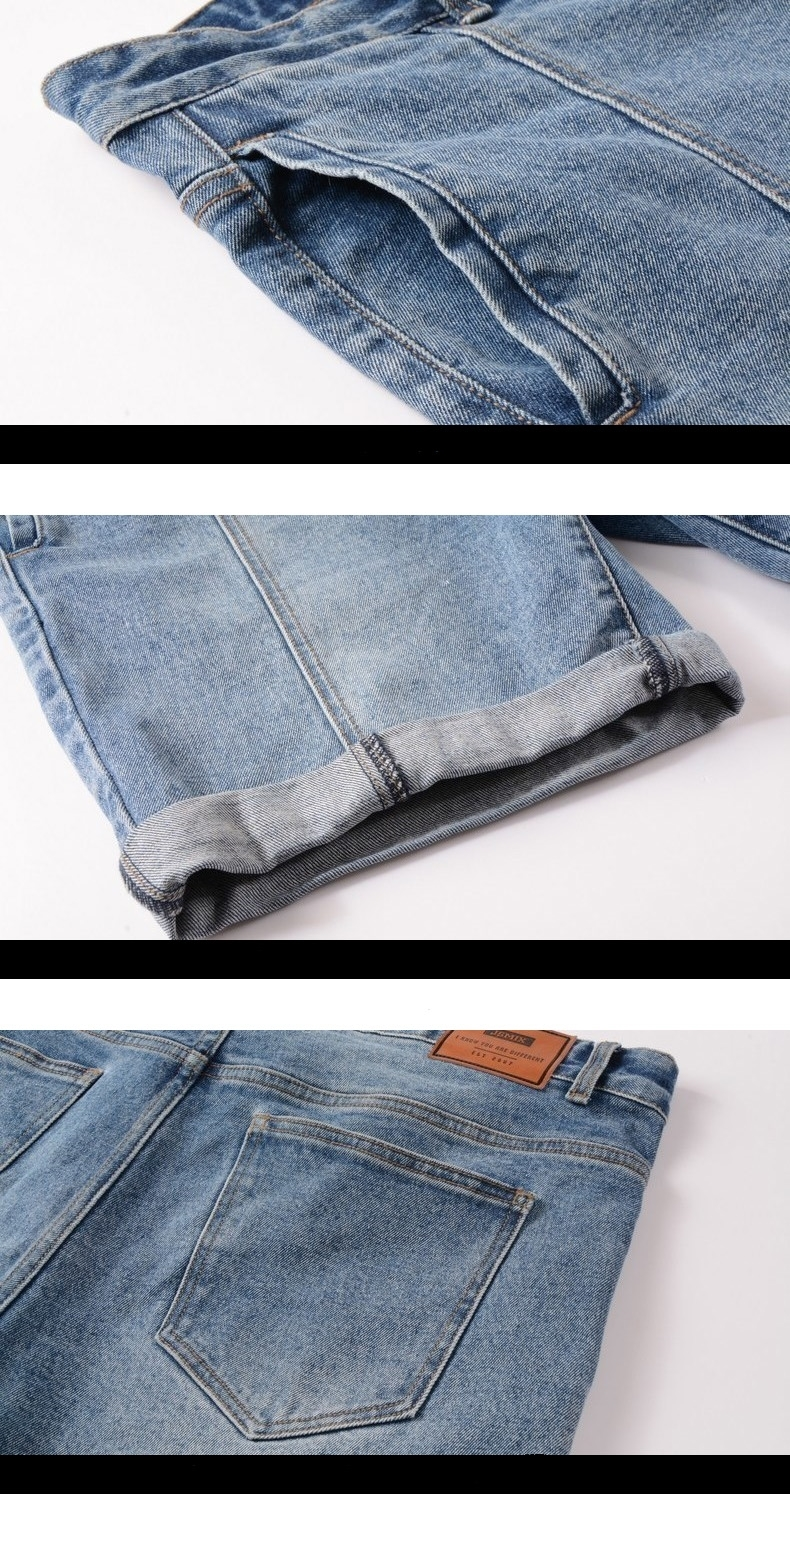 Picture of Fold-able Large Size Men's Denim Shorts